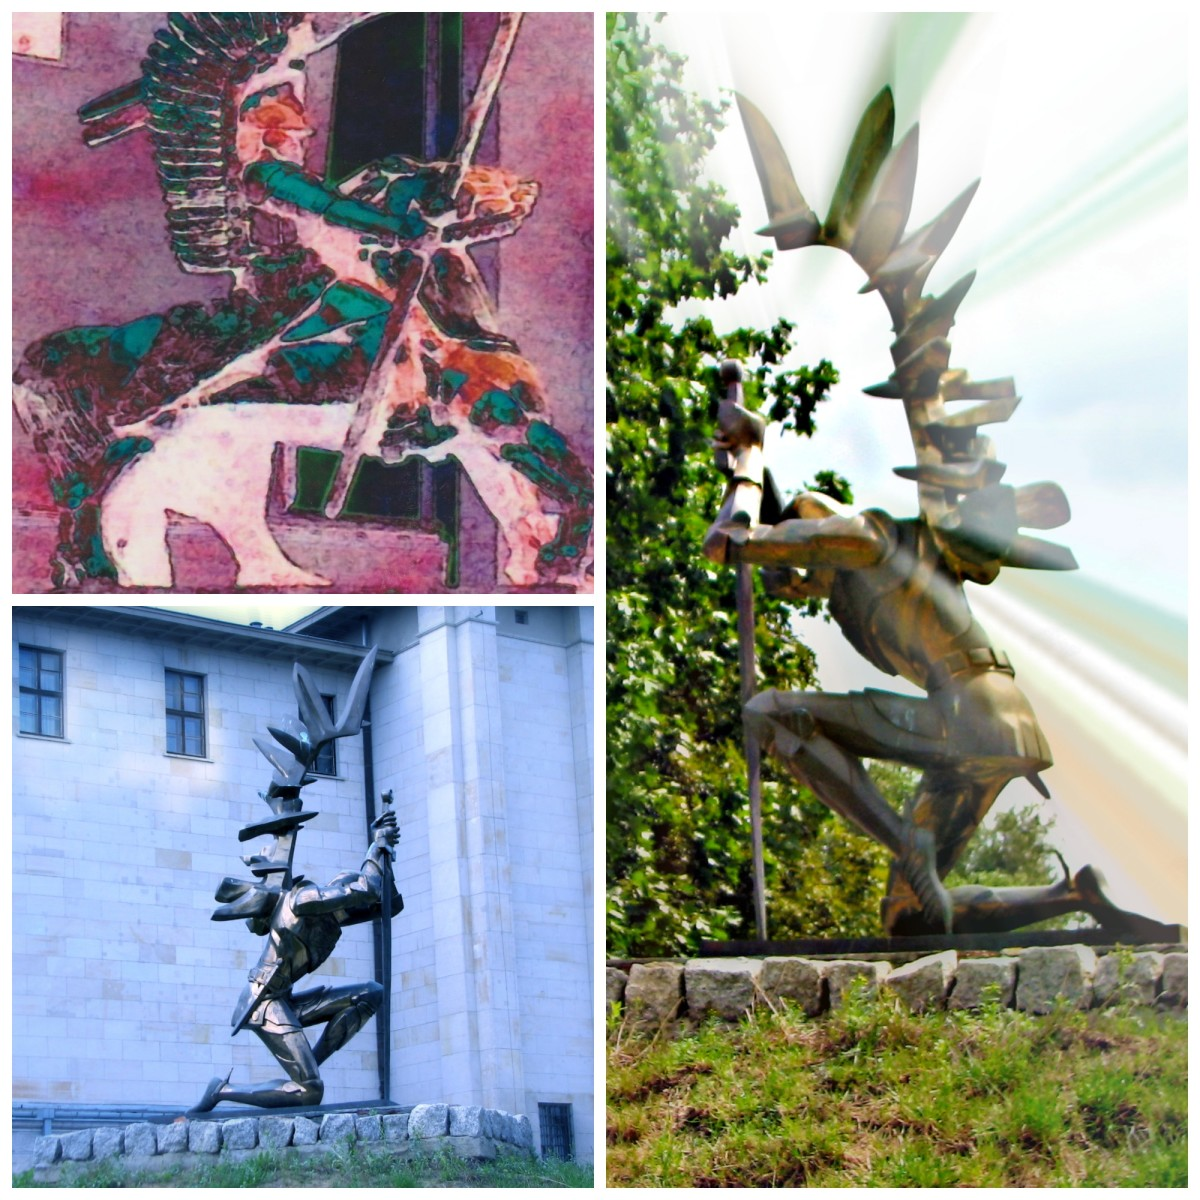 Winged Hussars near Entrance of Polish Army Museum, Warsaw; Collage © Georgene A. Bramlage